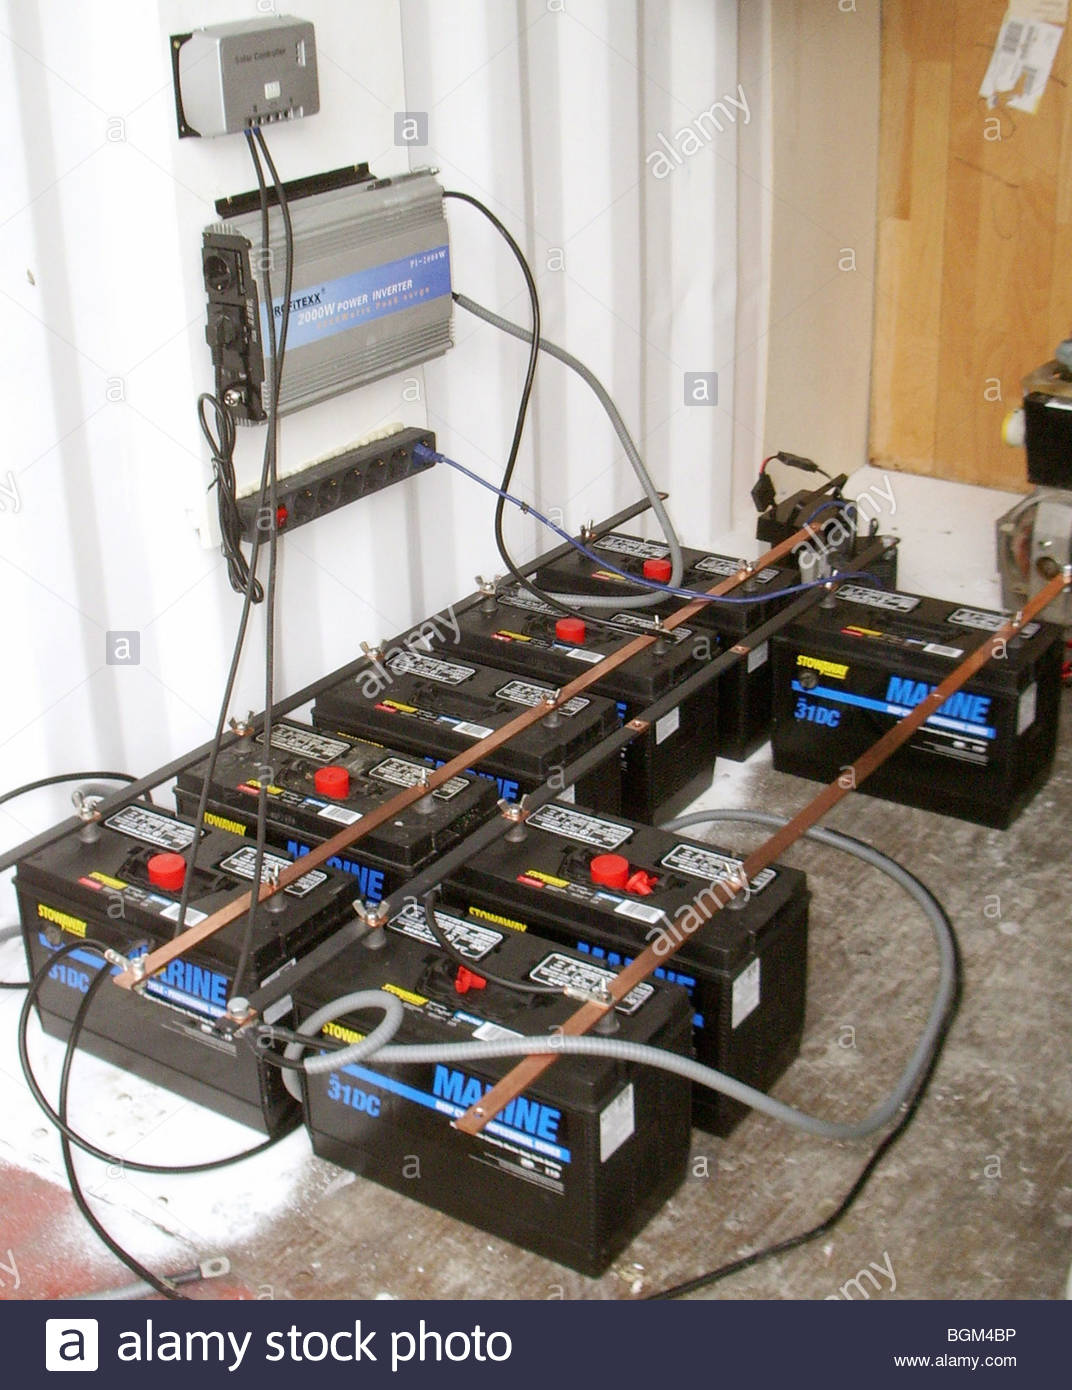 Solar Panel Regulator Stock Photos Marine Wiring Batteries Connected To A Inverter And Panels Image